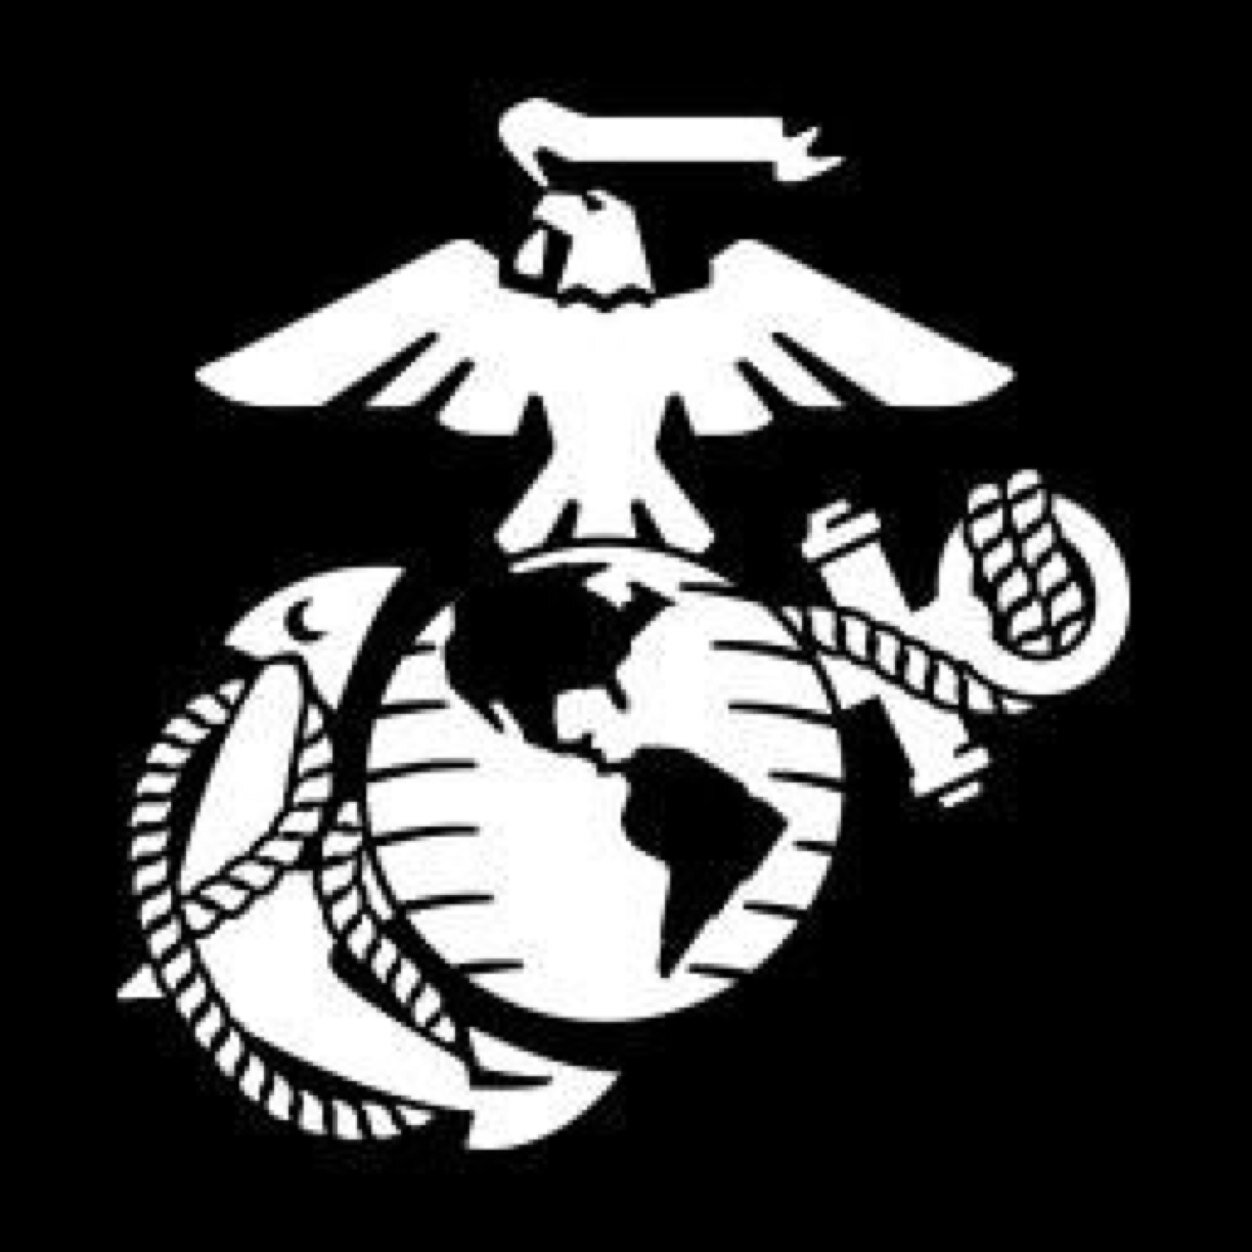 Marine Symbol Drawing At Getdrawings Free For Personal Use